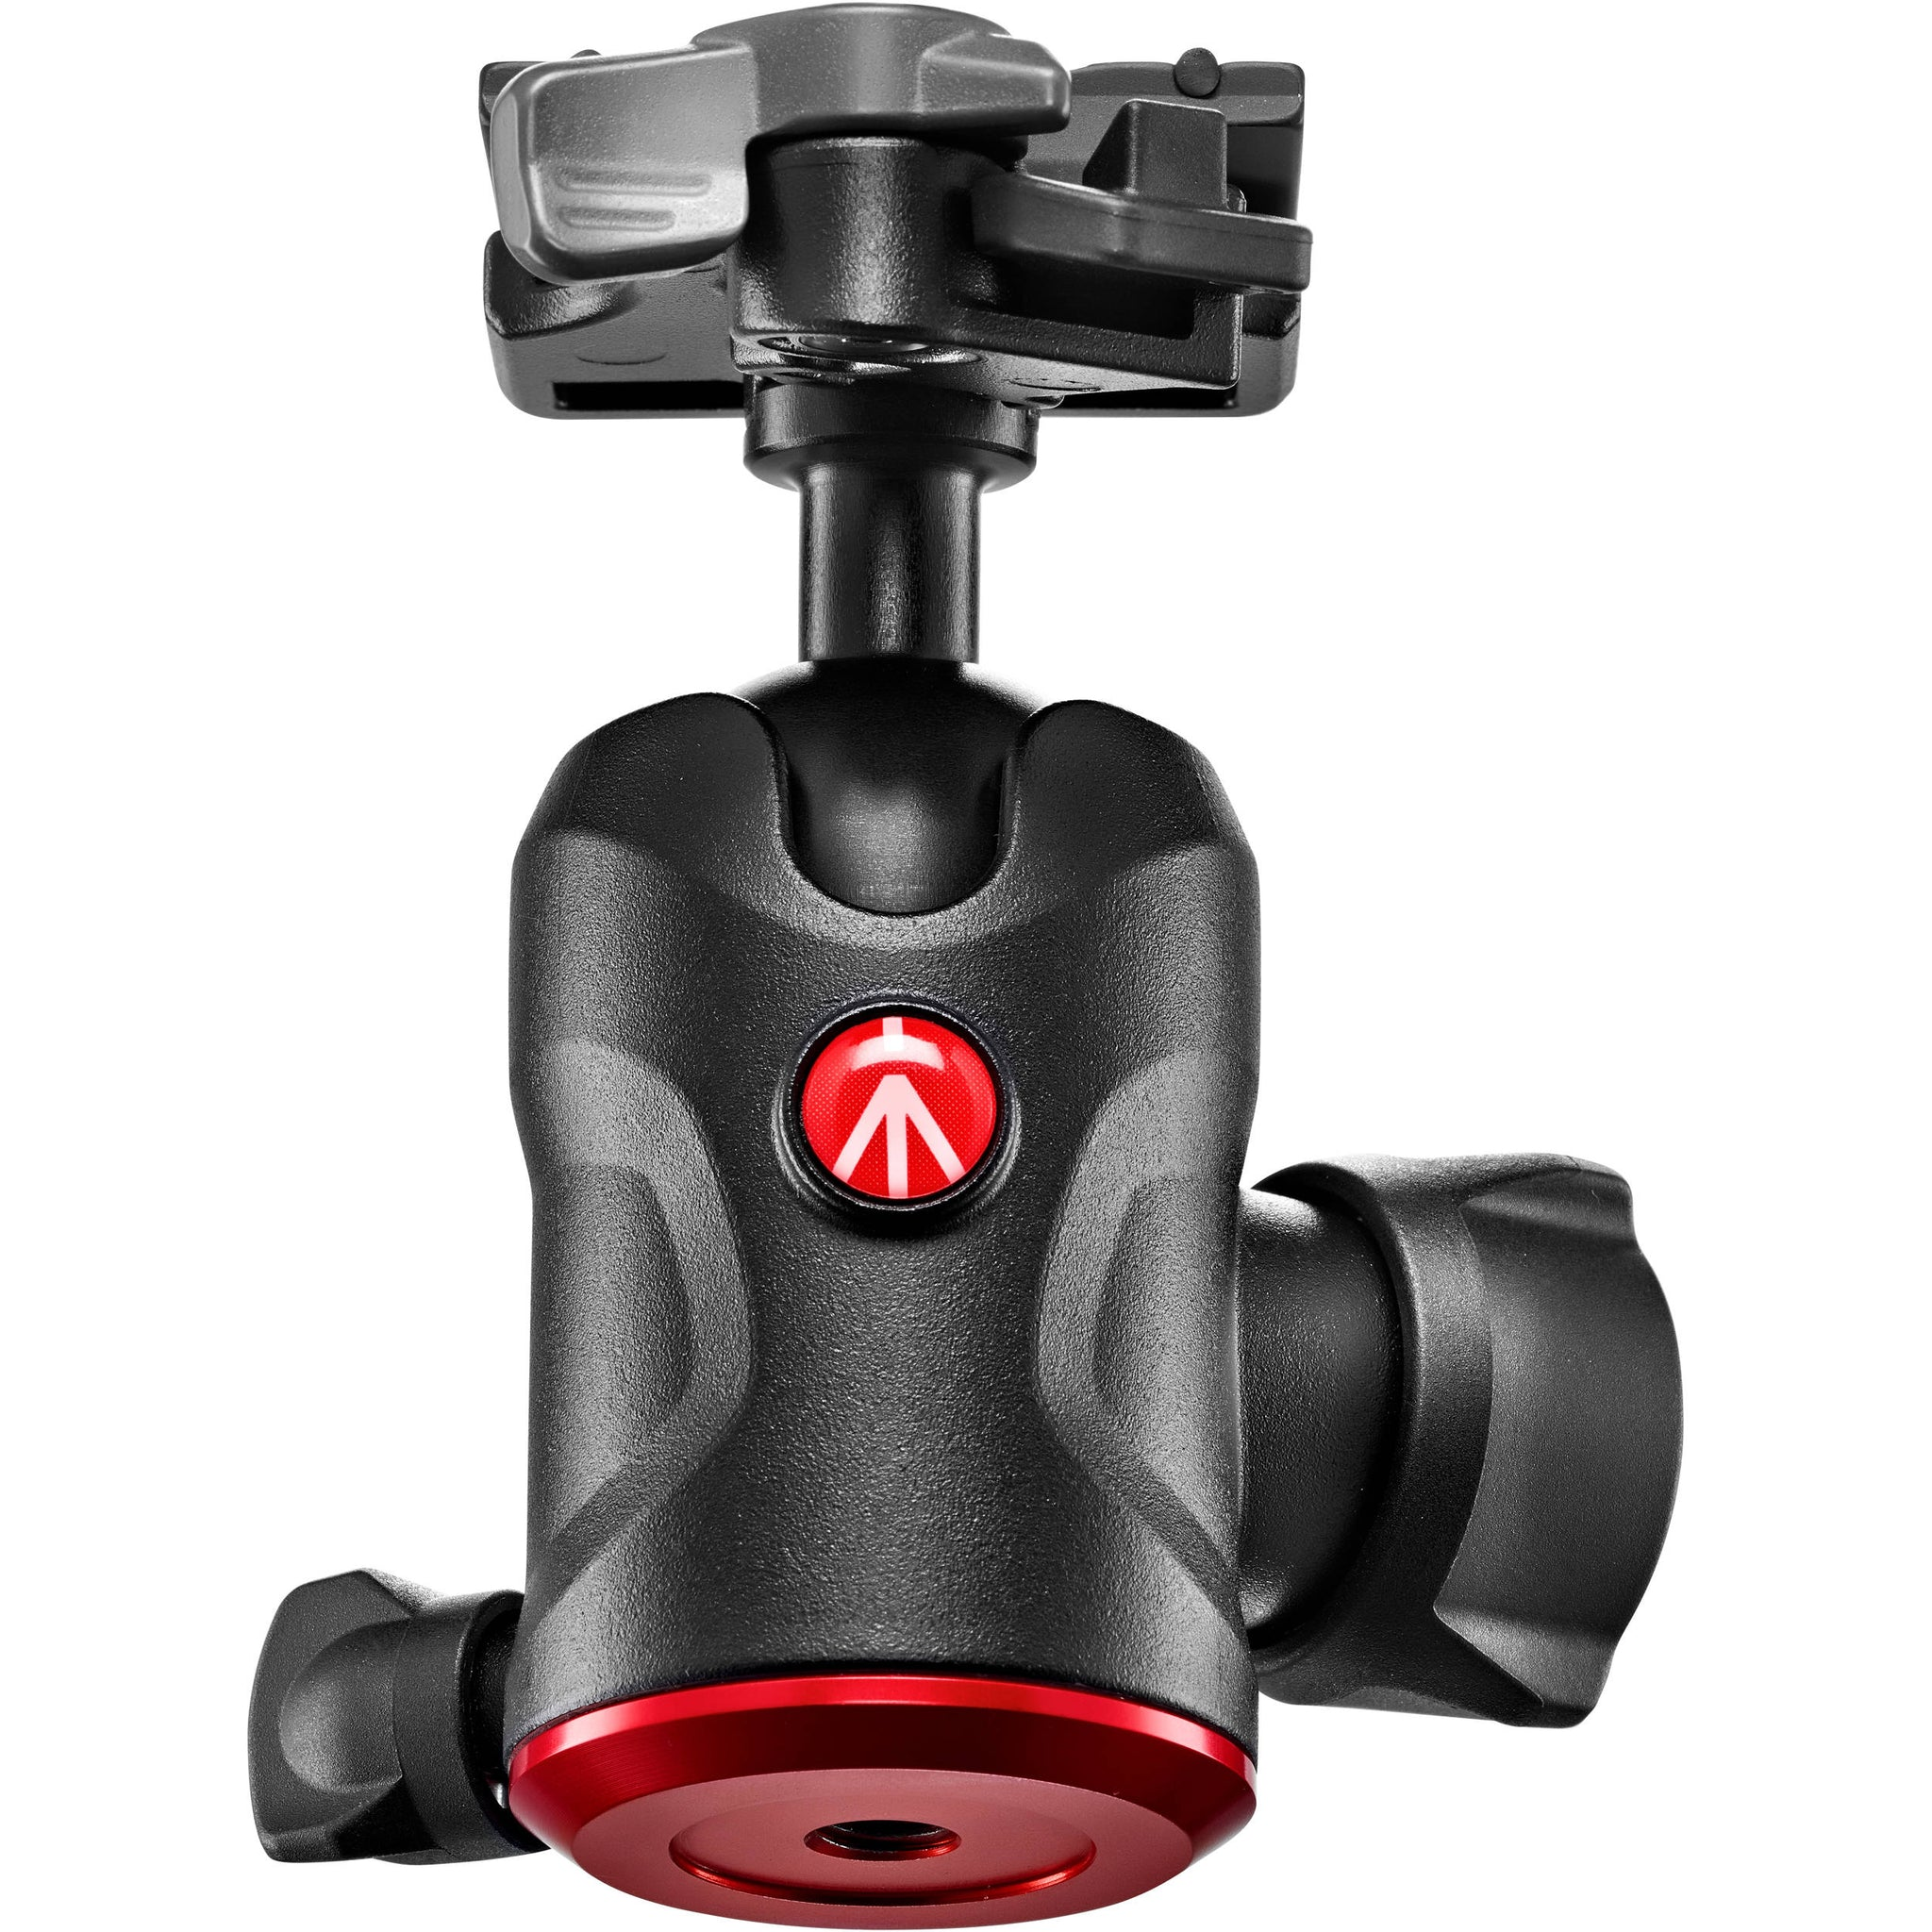 Manfrotto 496 Center Ball Head with 200PL-PRO Quick Release Plate